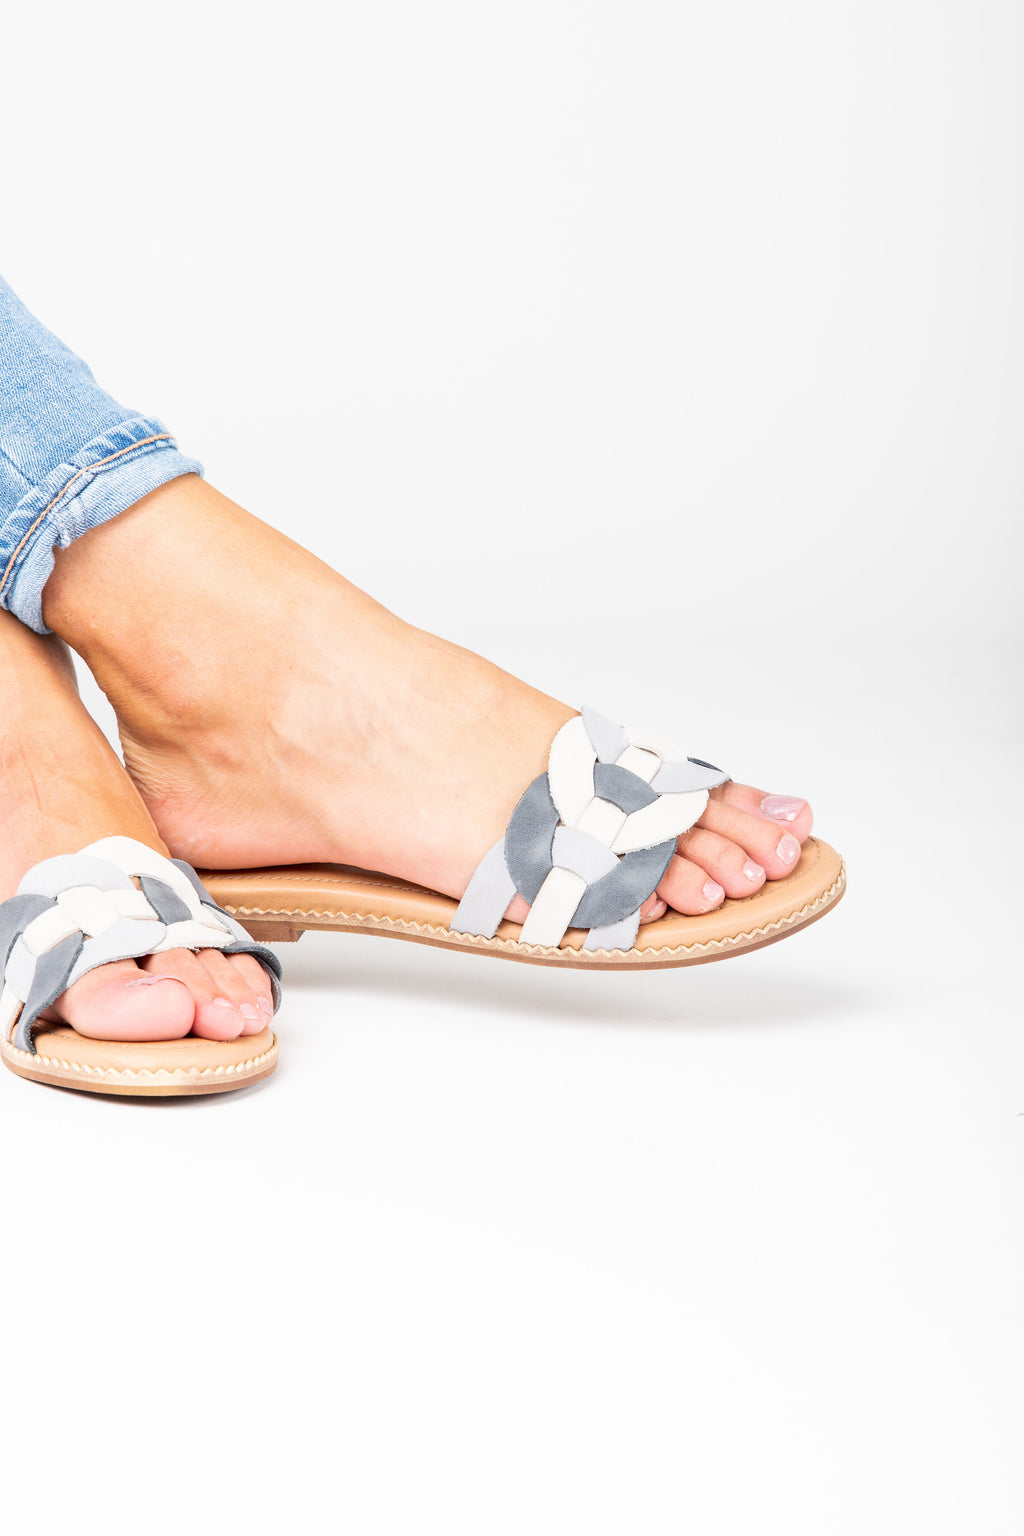 Crevo Footwear: The Poppi Slide Sandal in Dusty Blue, studio shoot; side view